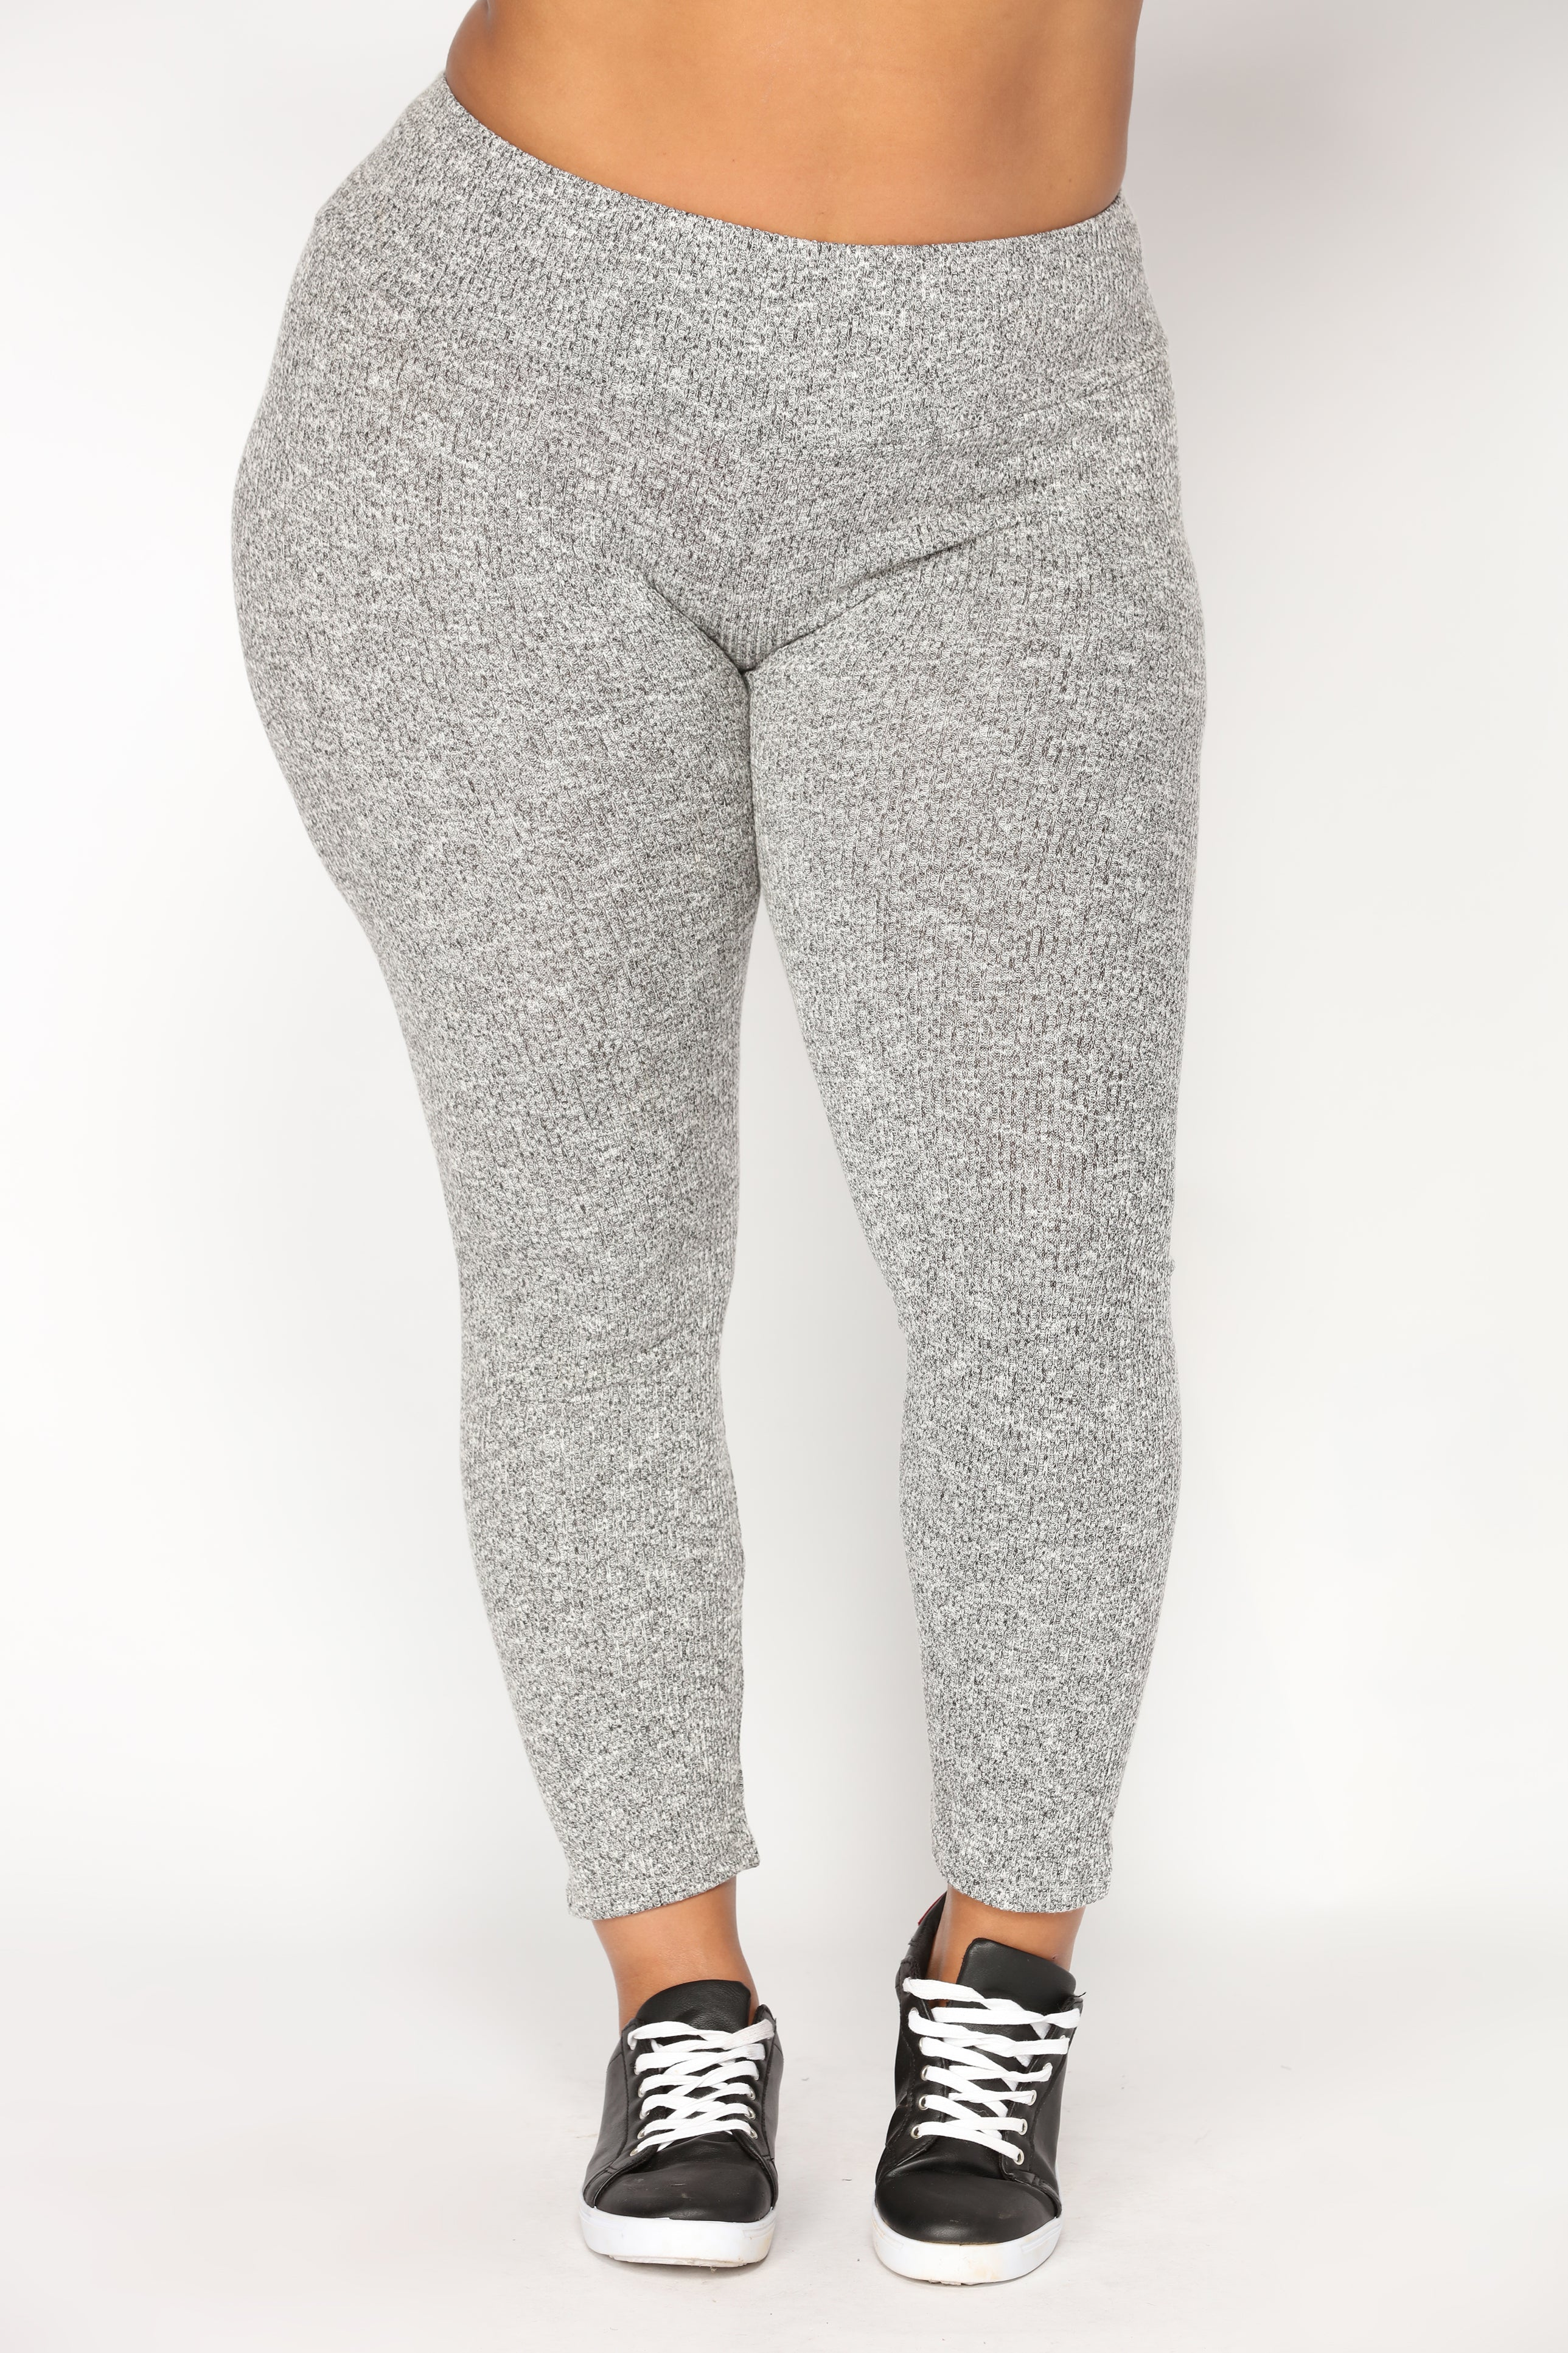 fd448440e55 We Should Be Together Leggings - Heather Grey